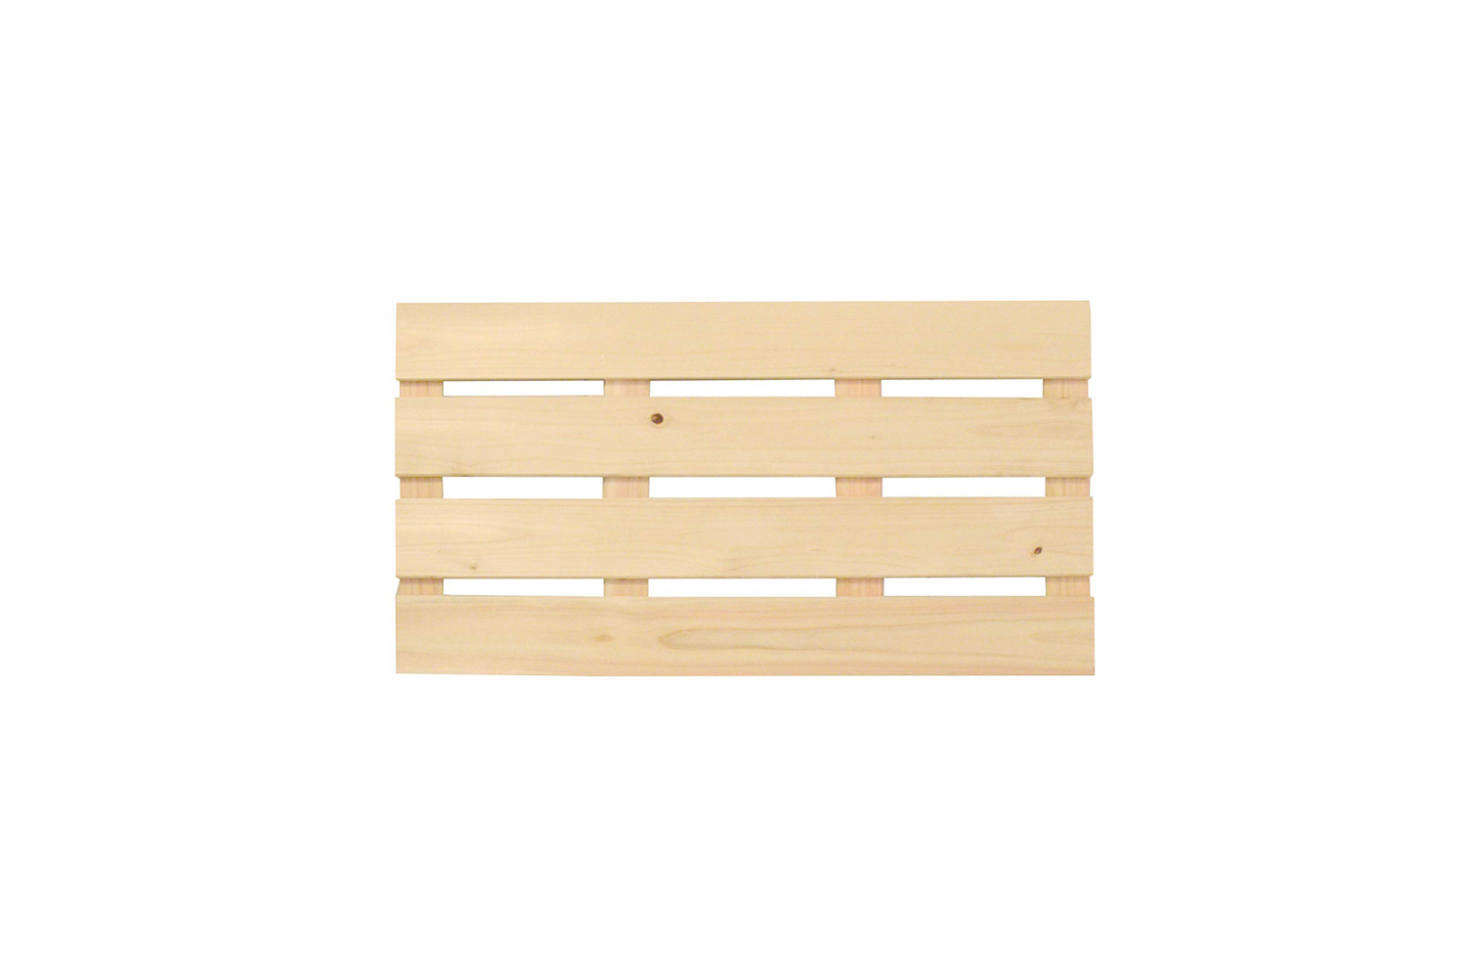 Another bathroom essential is the Hinoki bath mat. The Japanese cypress wood is naturally antibacterial, dries quickly, and has the appealing Hinoki wood scent. The Ippinka Large Hinoki Wood Bath Mat is $68 on Amazon.